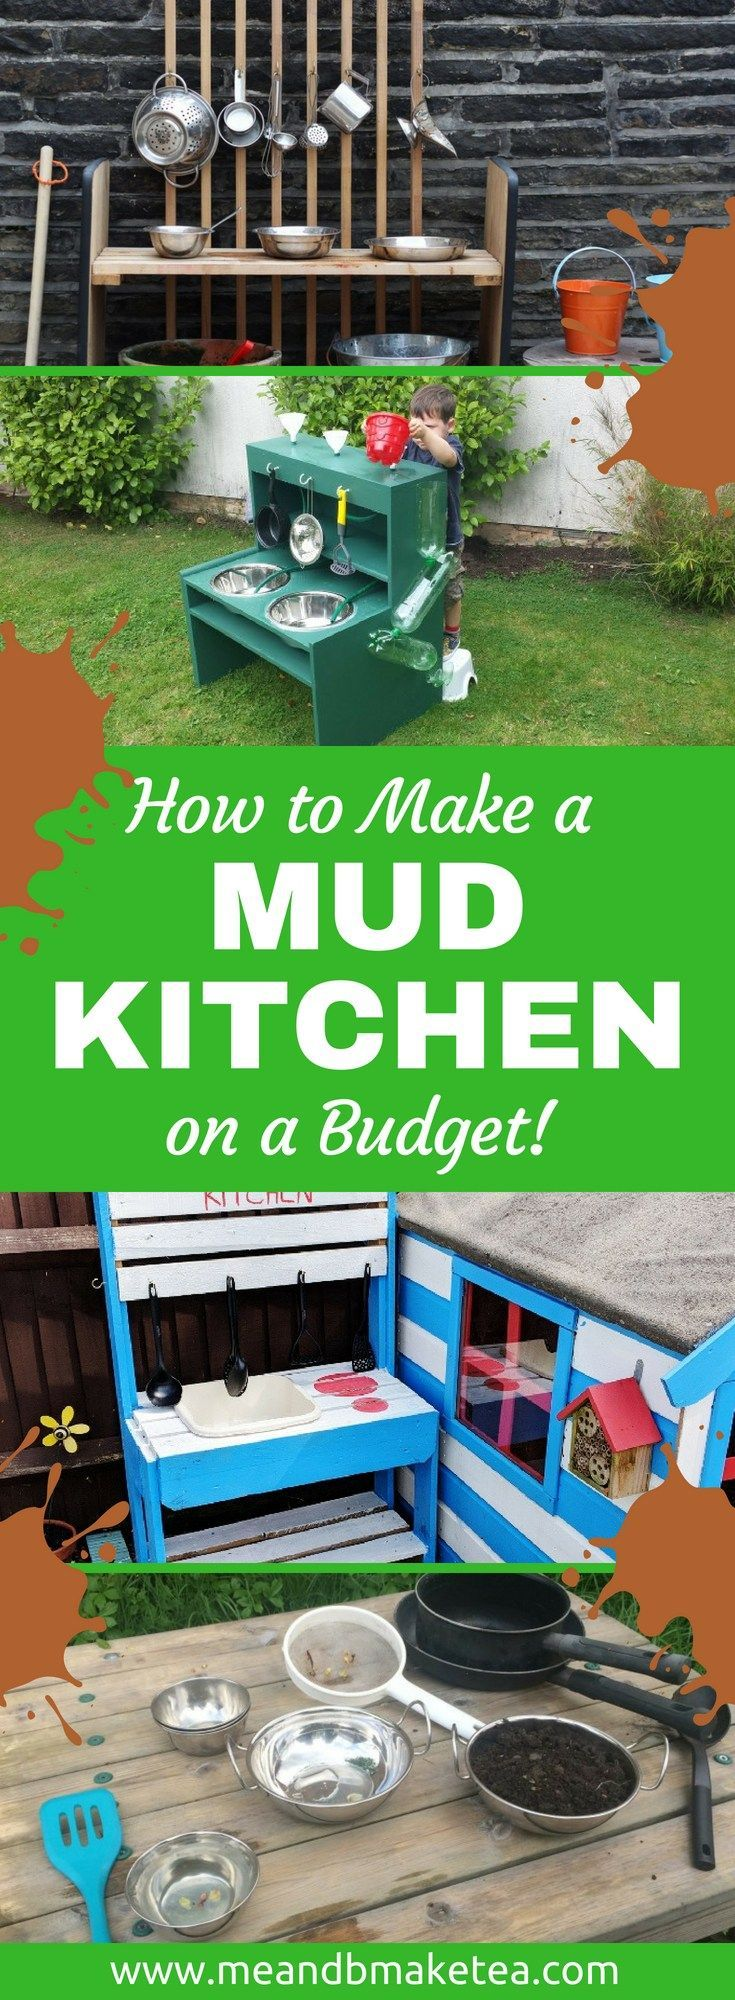 How to Make a Mud Kitchen on a Budget How to make a mud kitchen for summer outdoor play  Perfect for kids and you dont need to spend a fortune I show you simple ideas for...